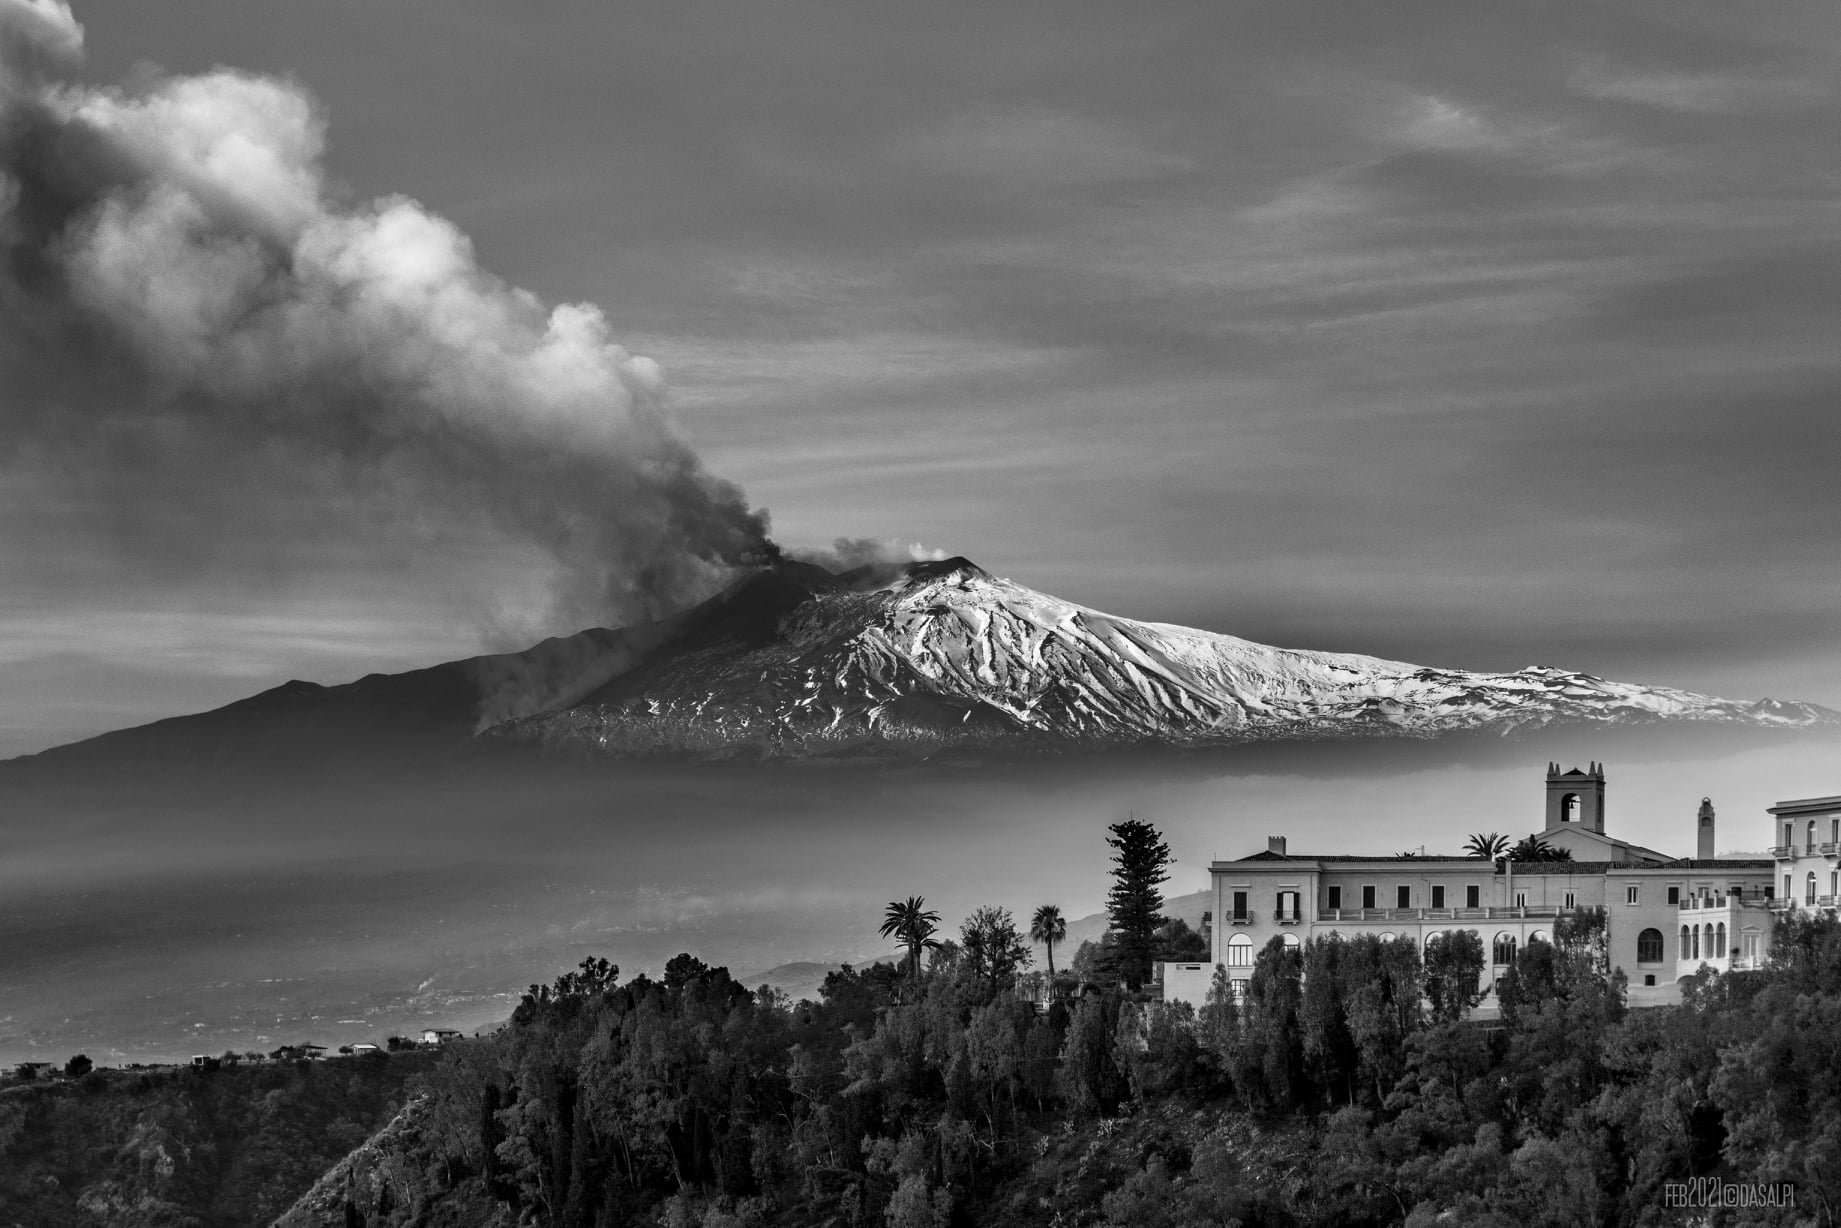 3rd eruption, 19th feb 2021. View from Taormina, Dasalpi Travel